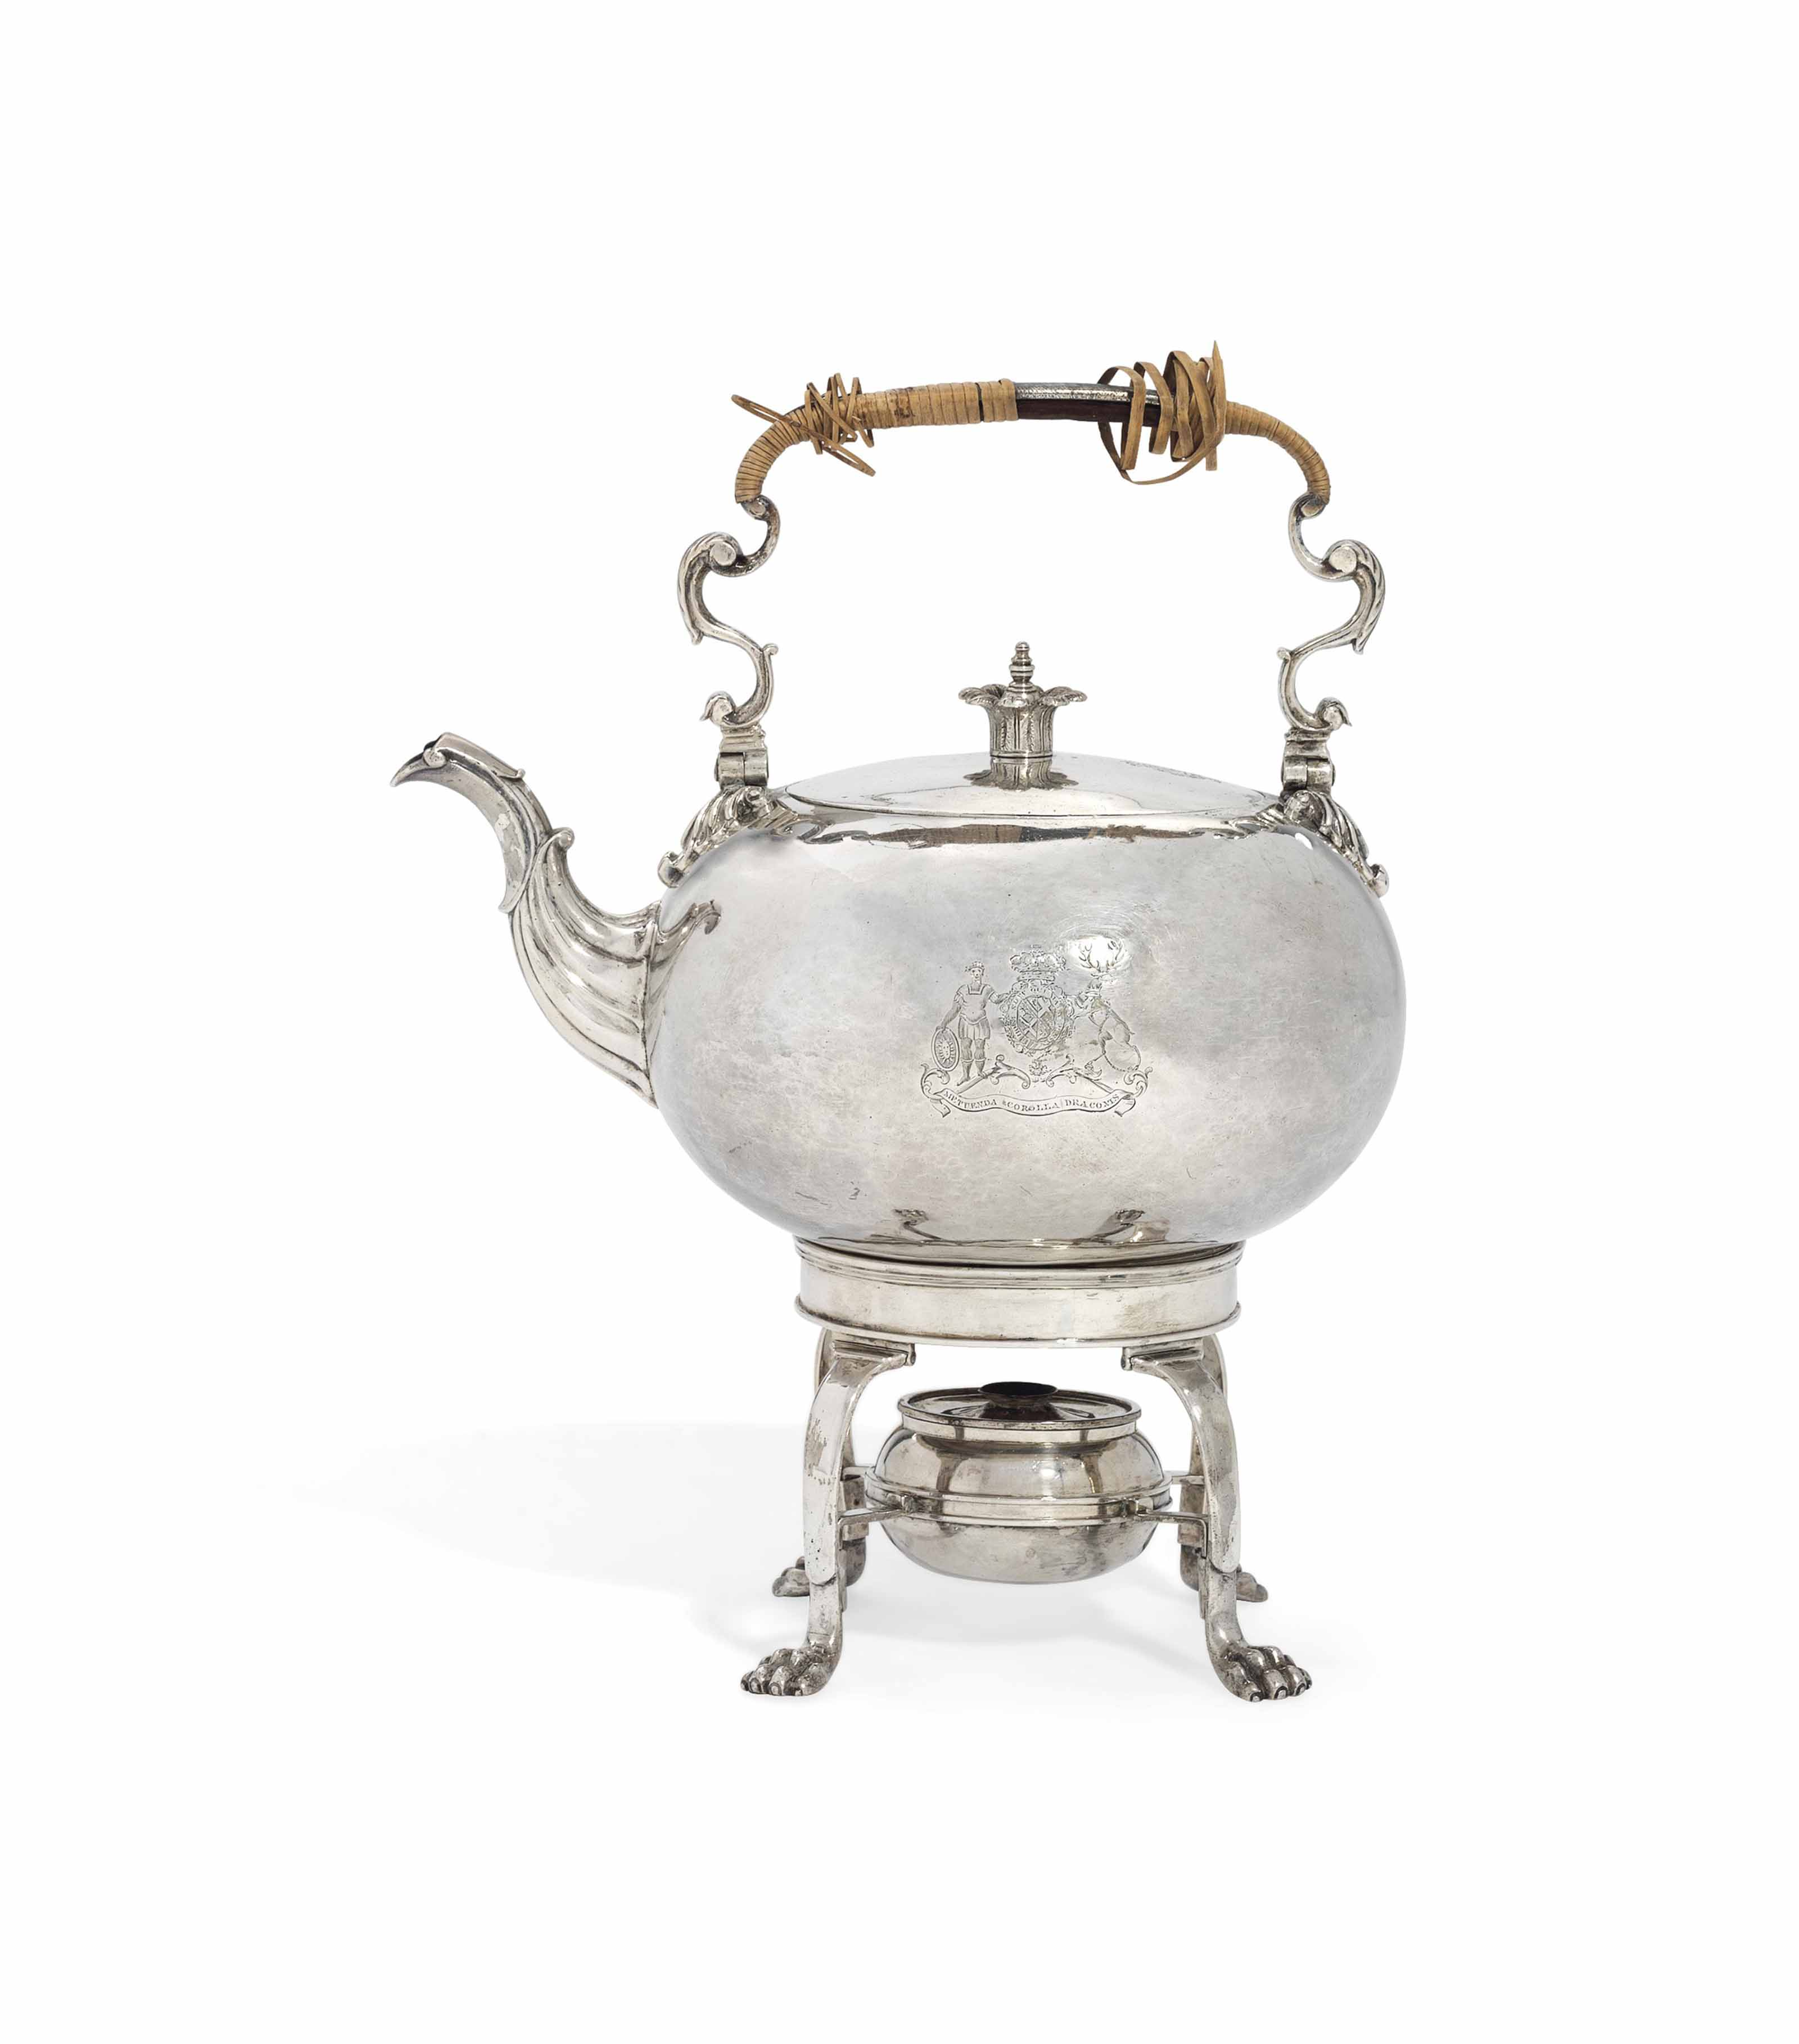 A GEORGE III SILVER TRAVELLING TEA KETTLE, STAND AND LAMP